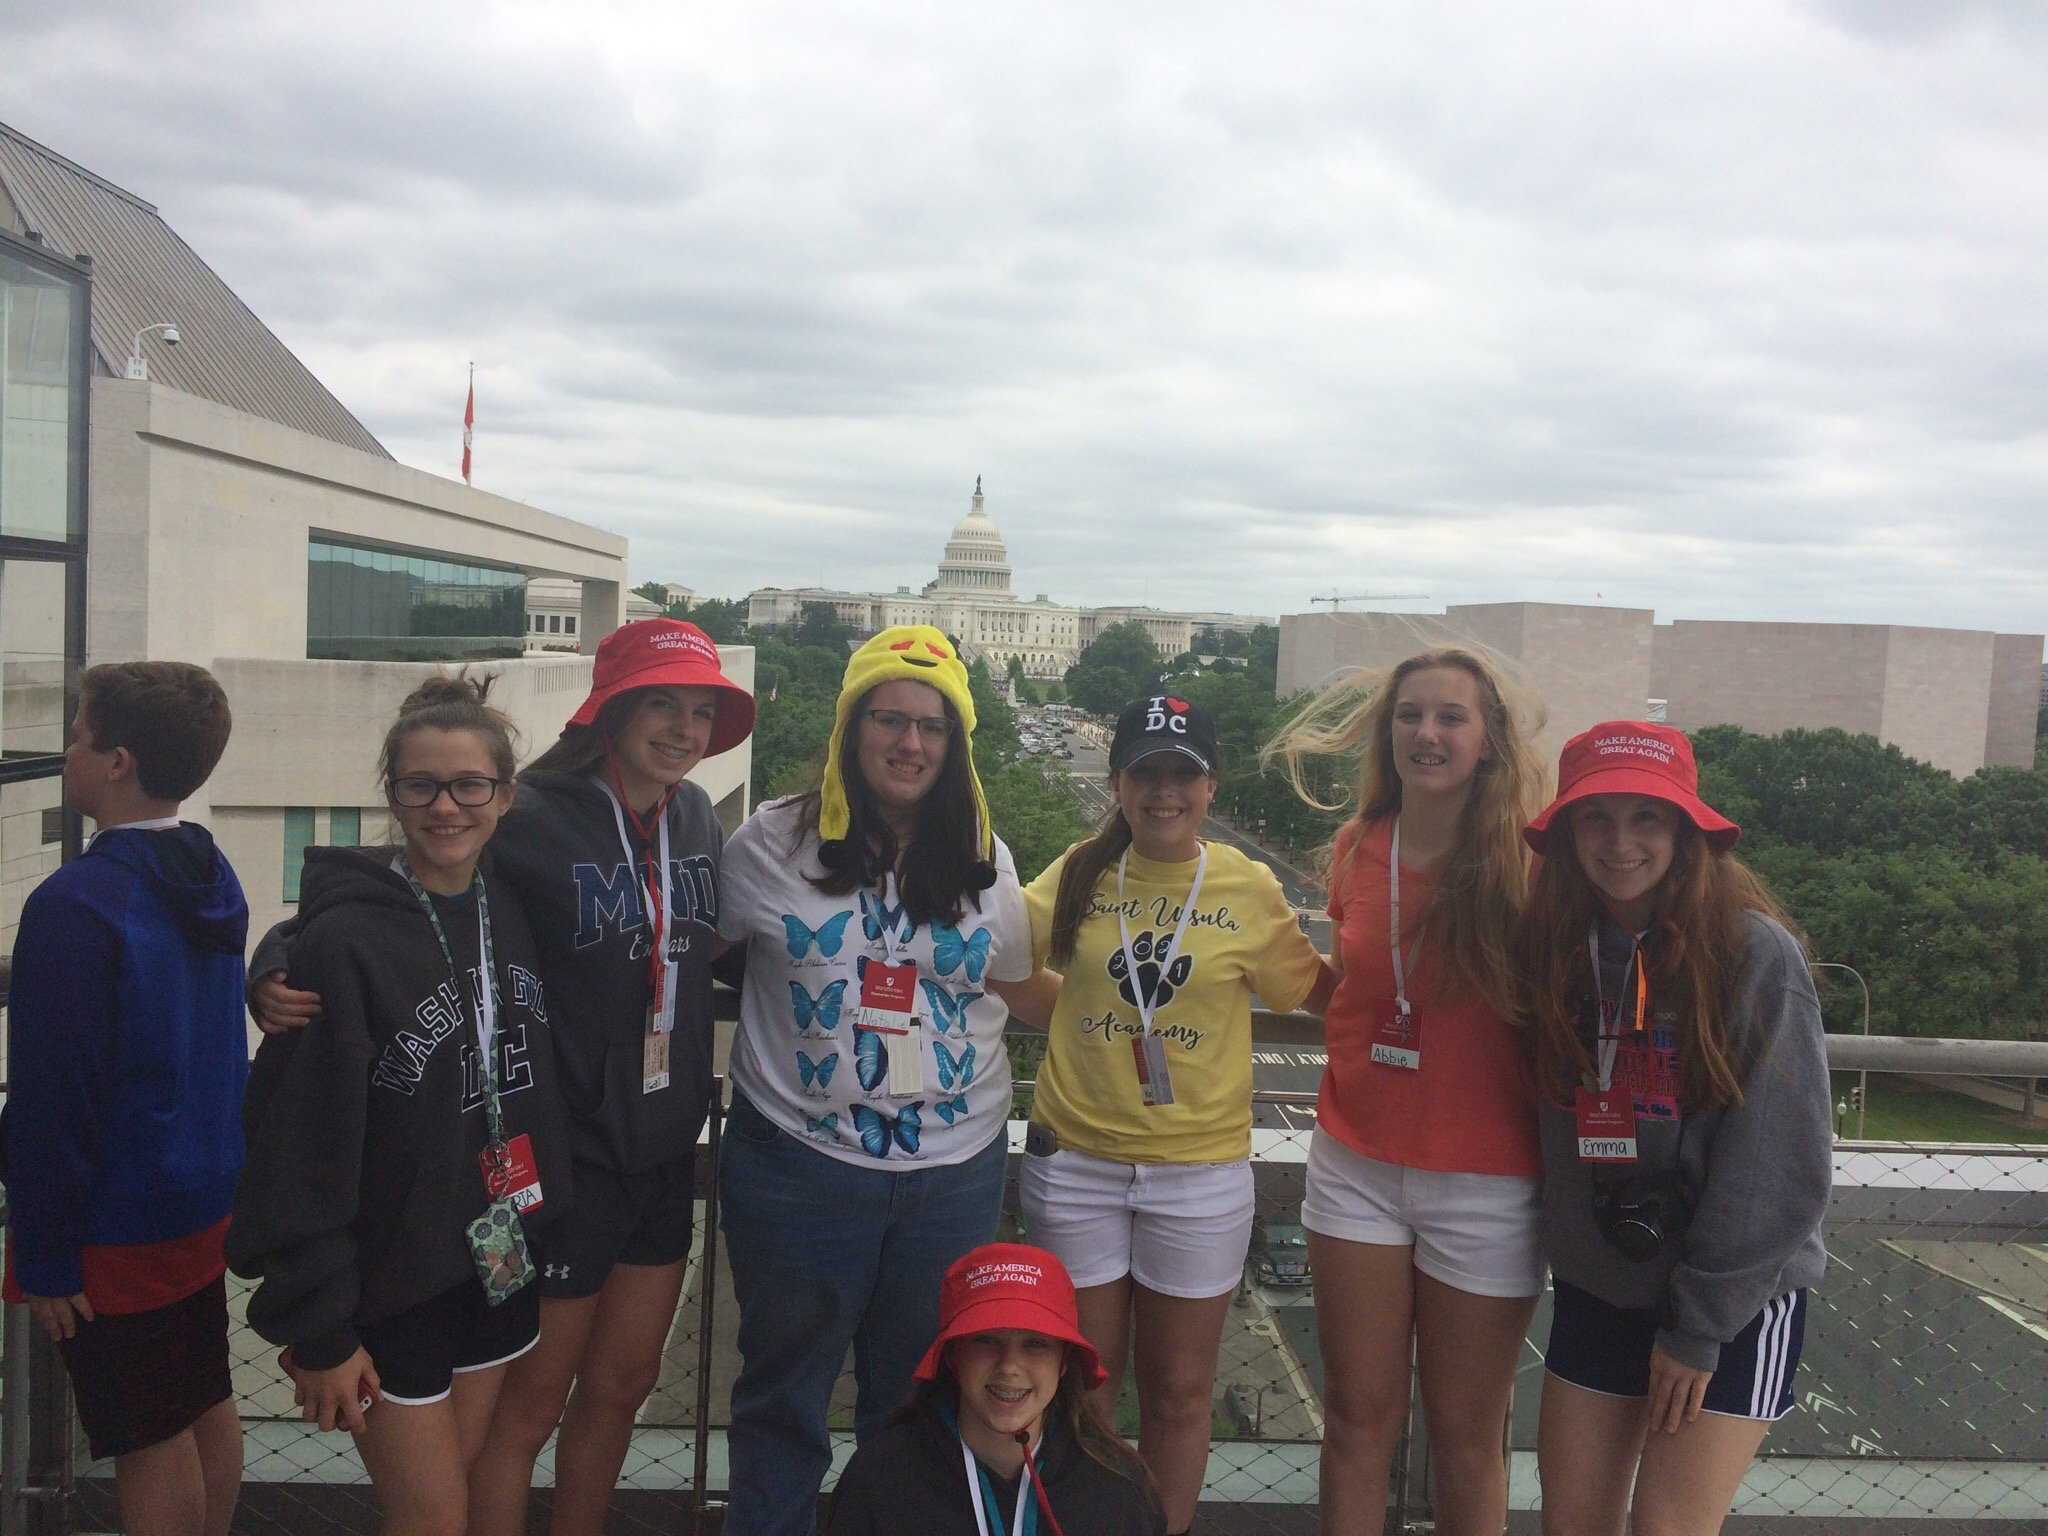 Me and some of my classmates on top of the Newseum